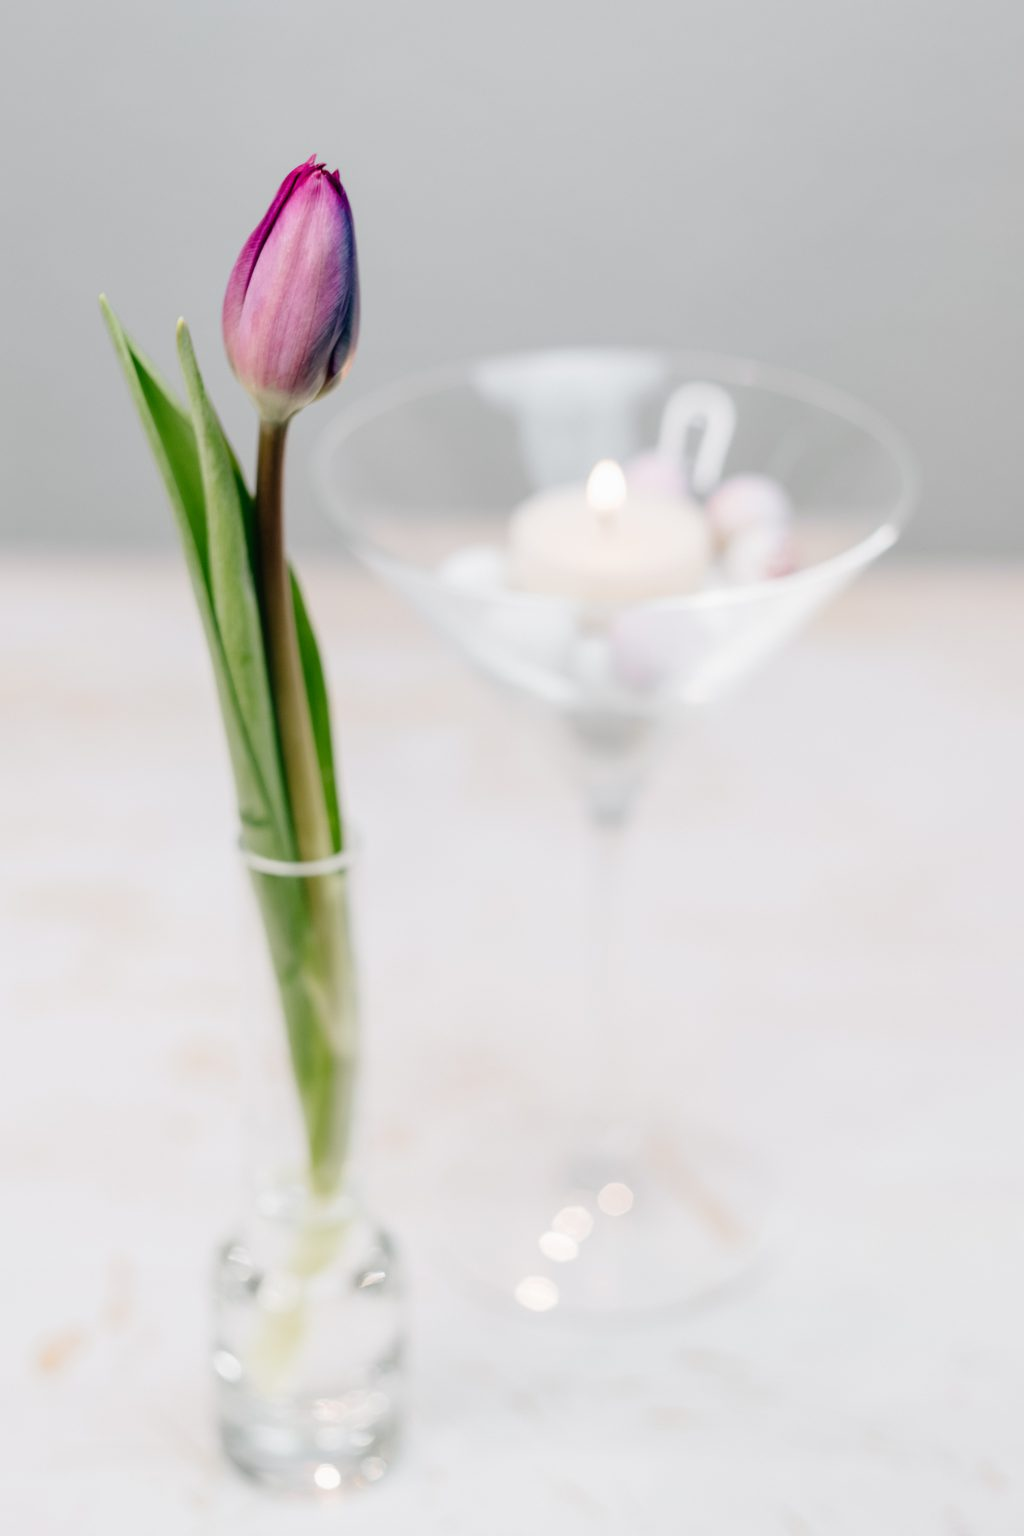 Table candle decoration with a purple tulip 2 - free stock photo